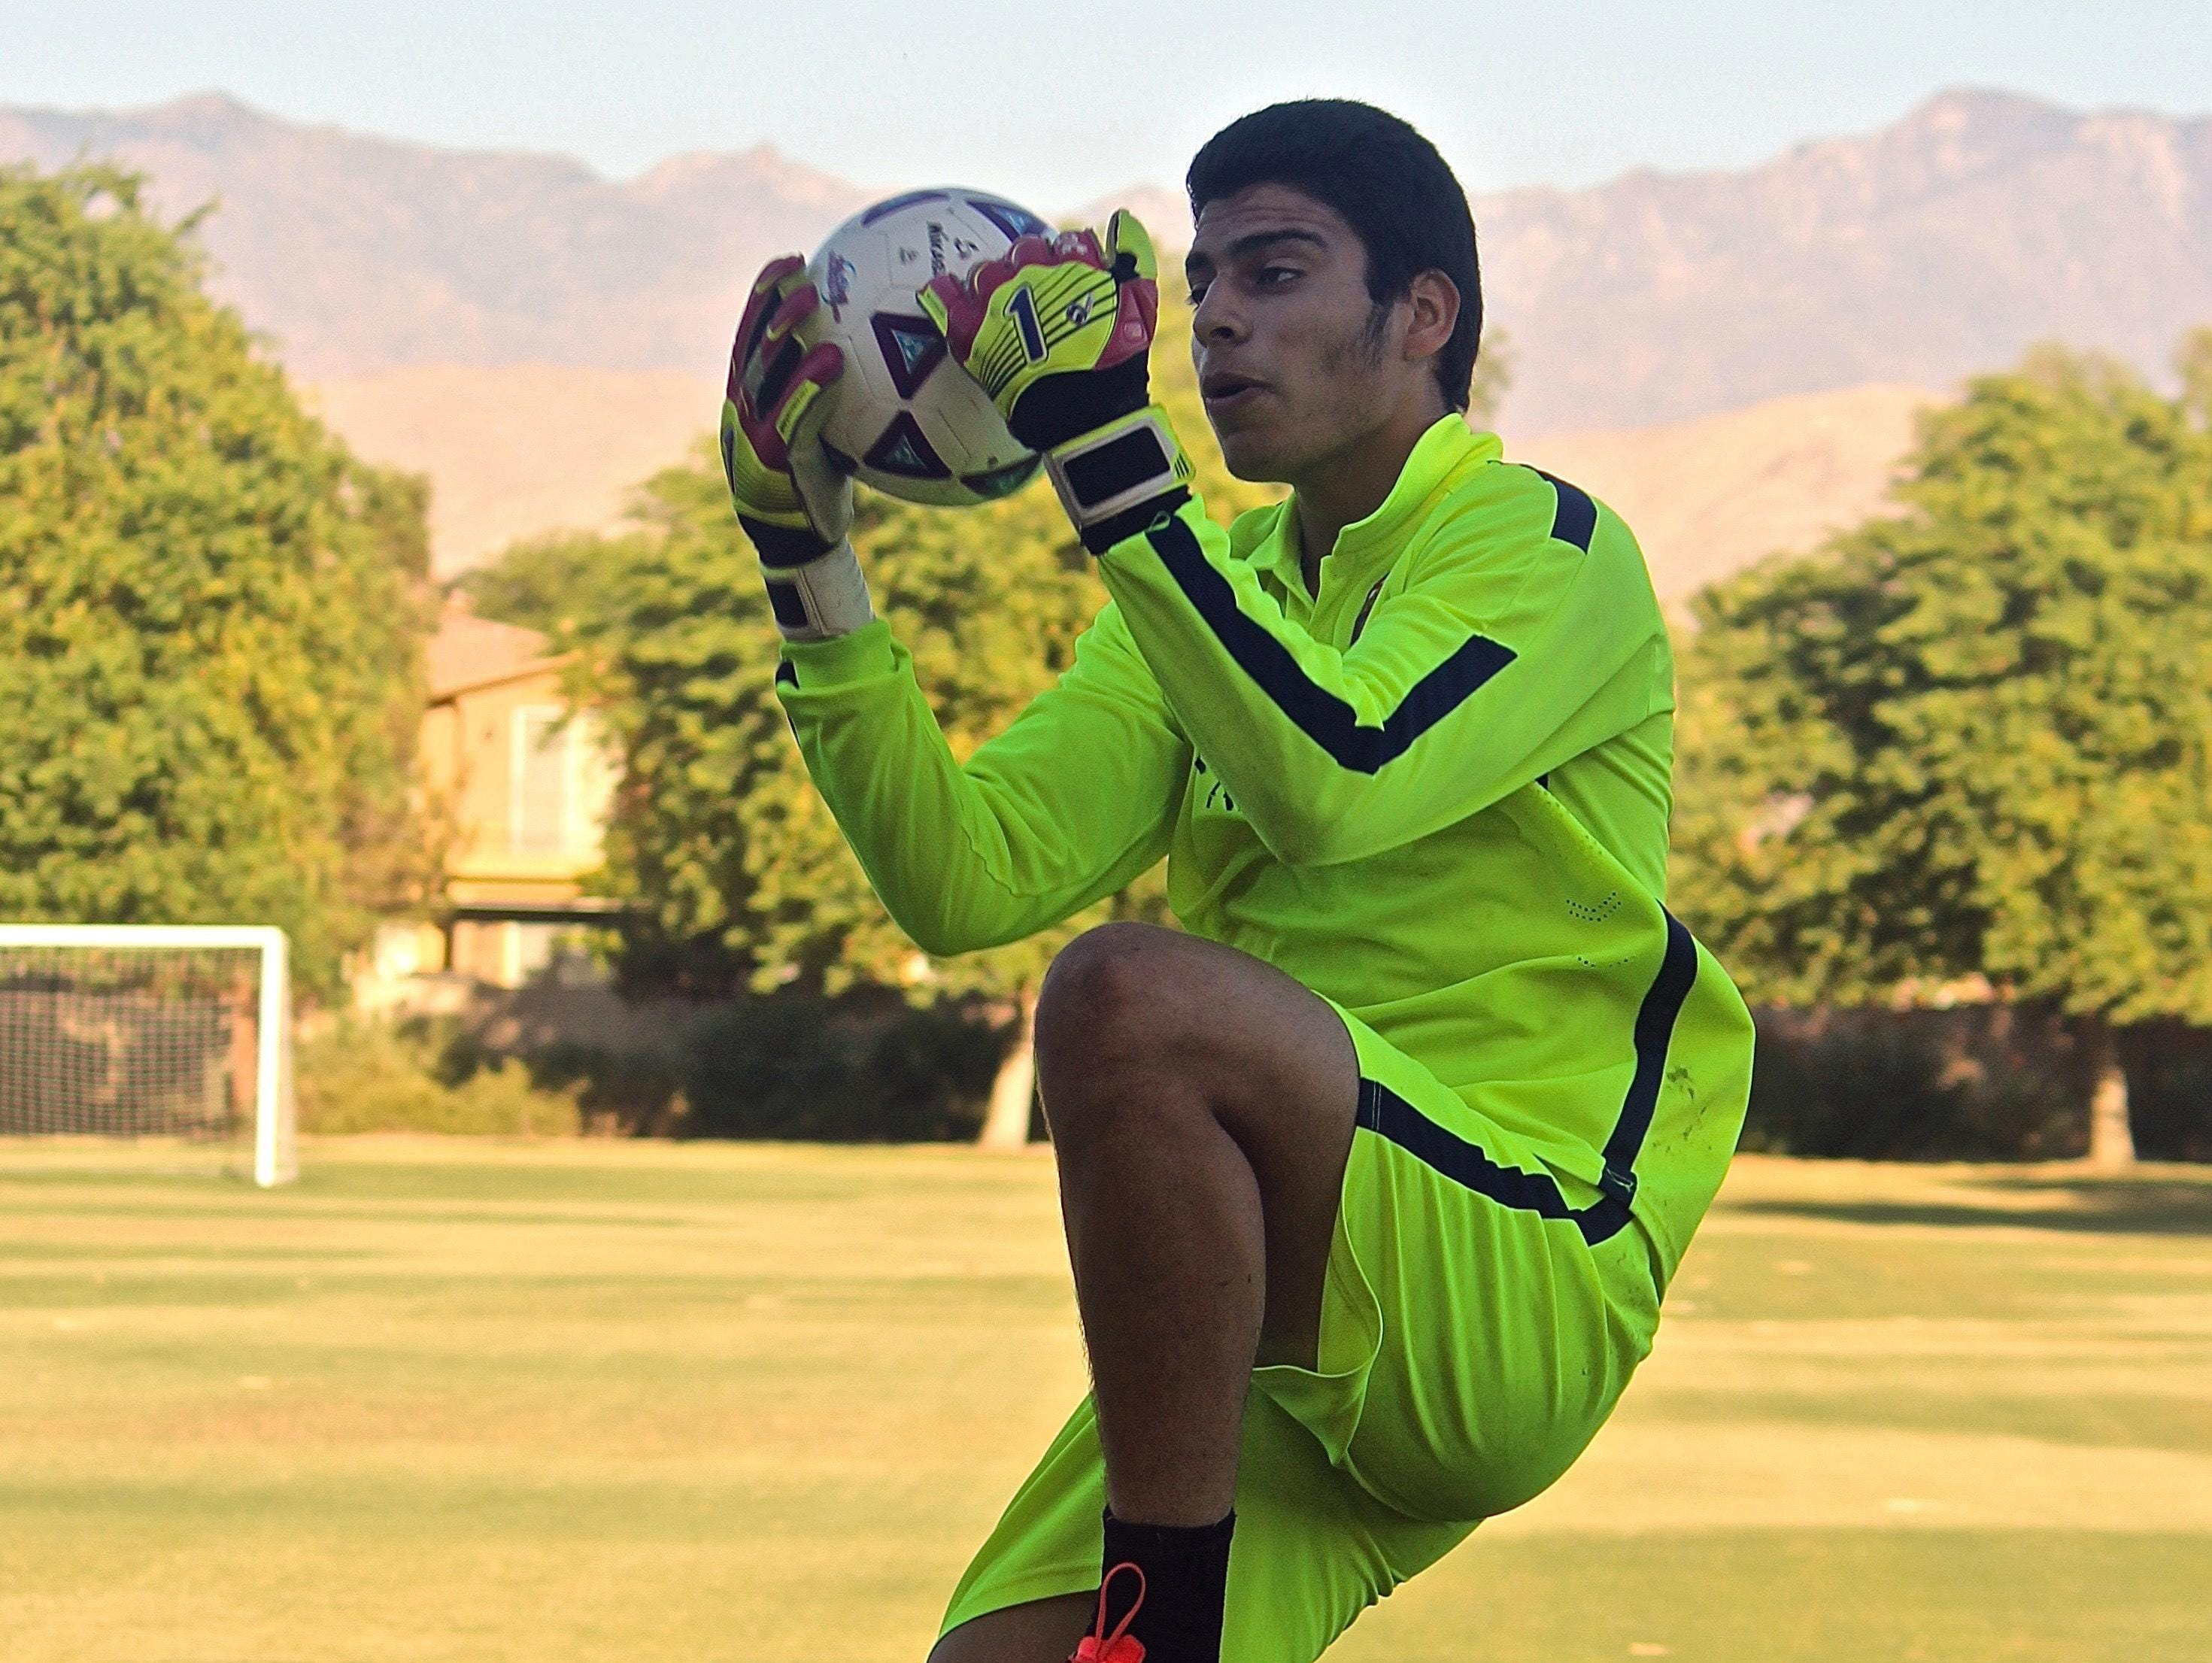 Uriel Lopez practices at the Hovley Soccer Park in Palm Desert, on Tuesday. Lopez is on his way to Mexico this Friday where he will start Chivas Guadalajara's Development Program.